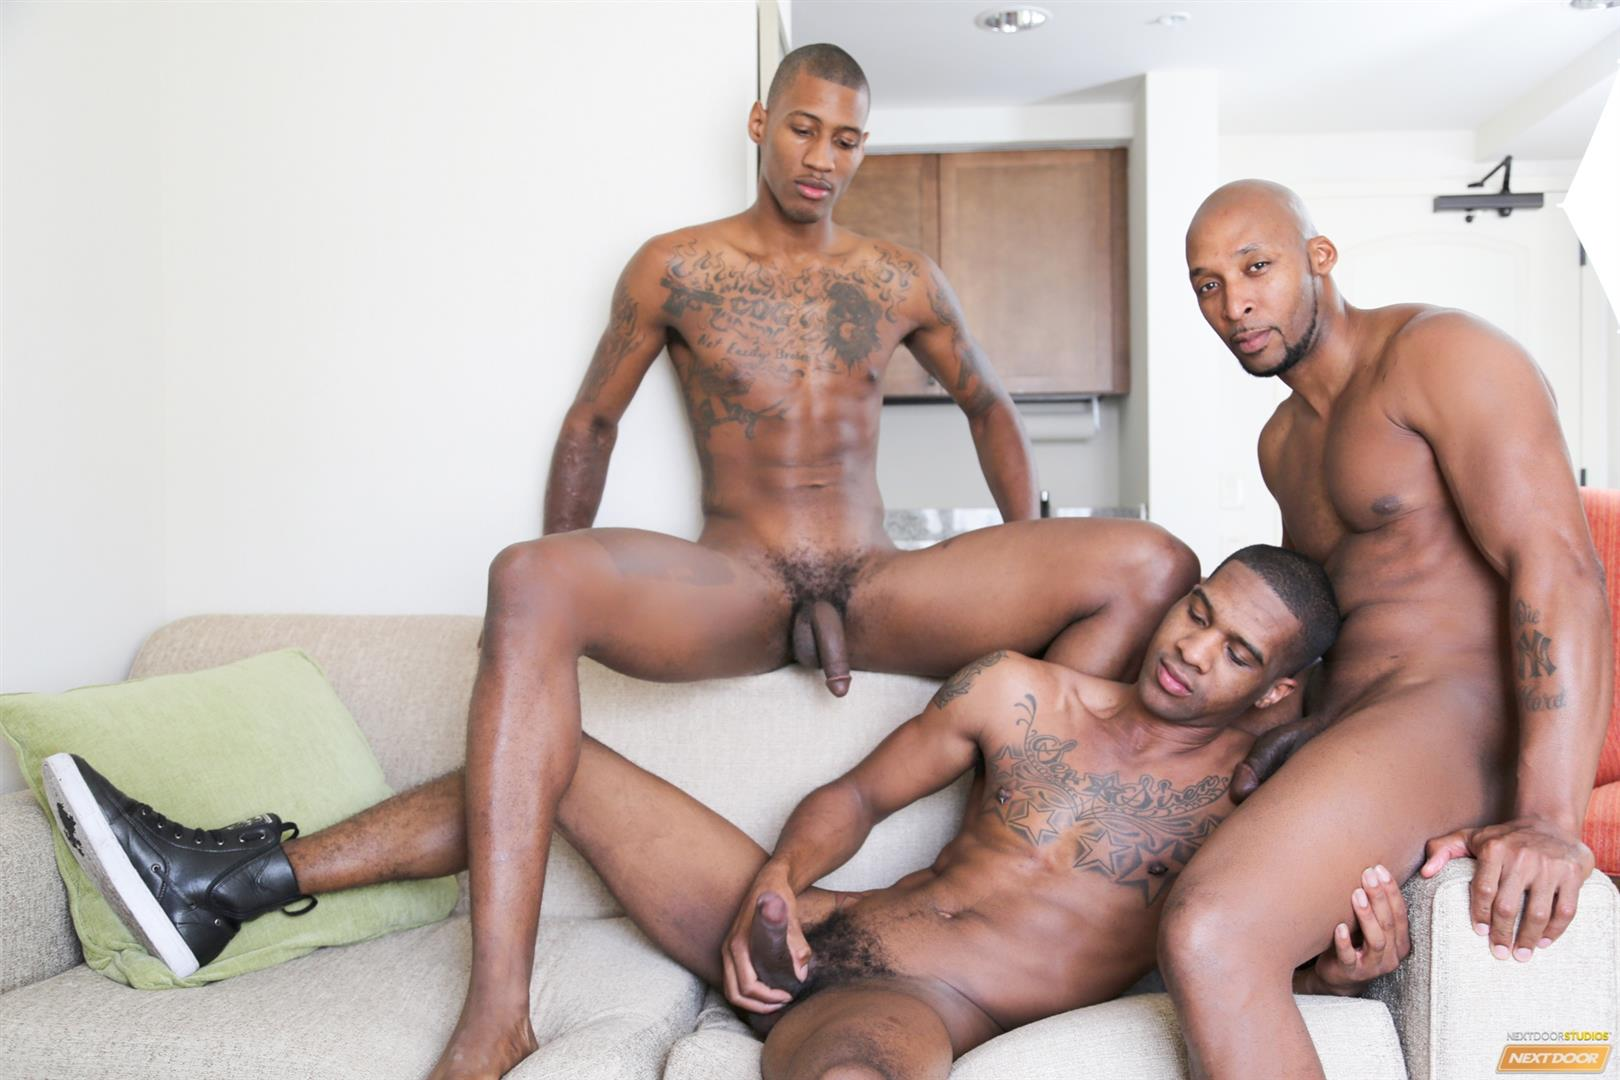 Next-Door-Ebony-Ramsees-and-King-B-and-Staxx-Big-Black-Cock-Group-Sex-Amateur-Gay-Porn-06 King B Takes Two Big Black Cocks Up The Ass For His Birthday